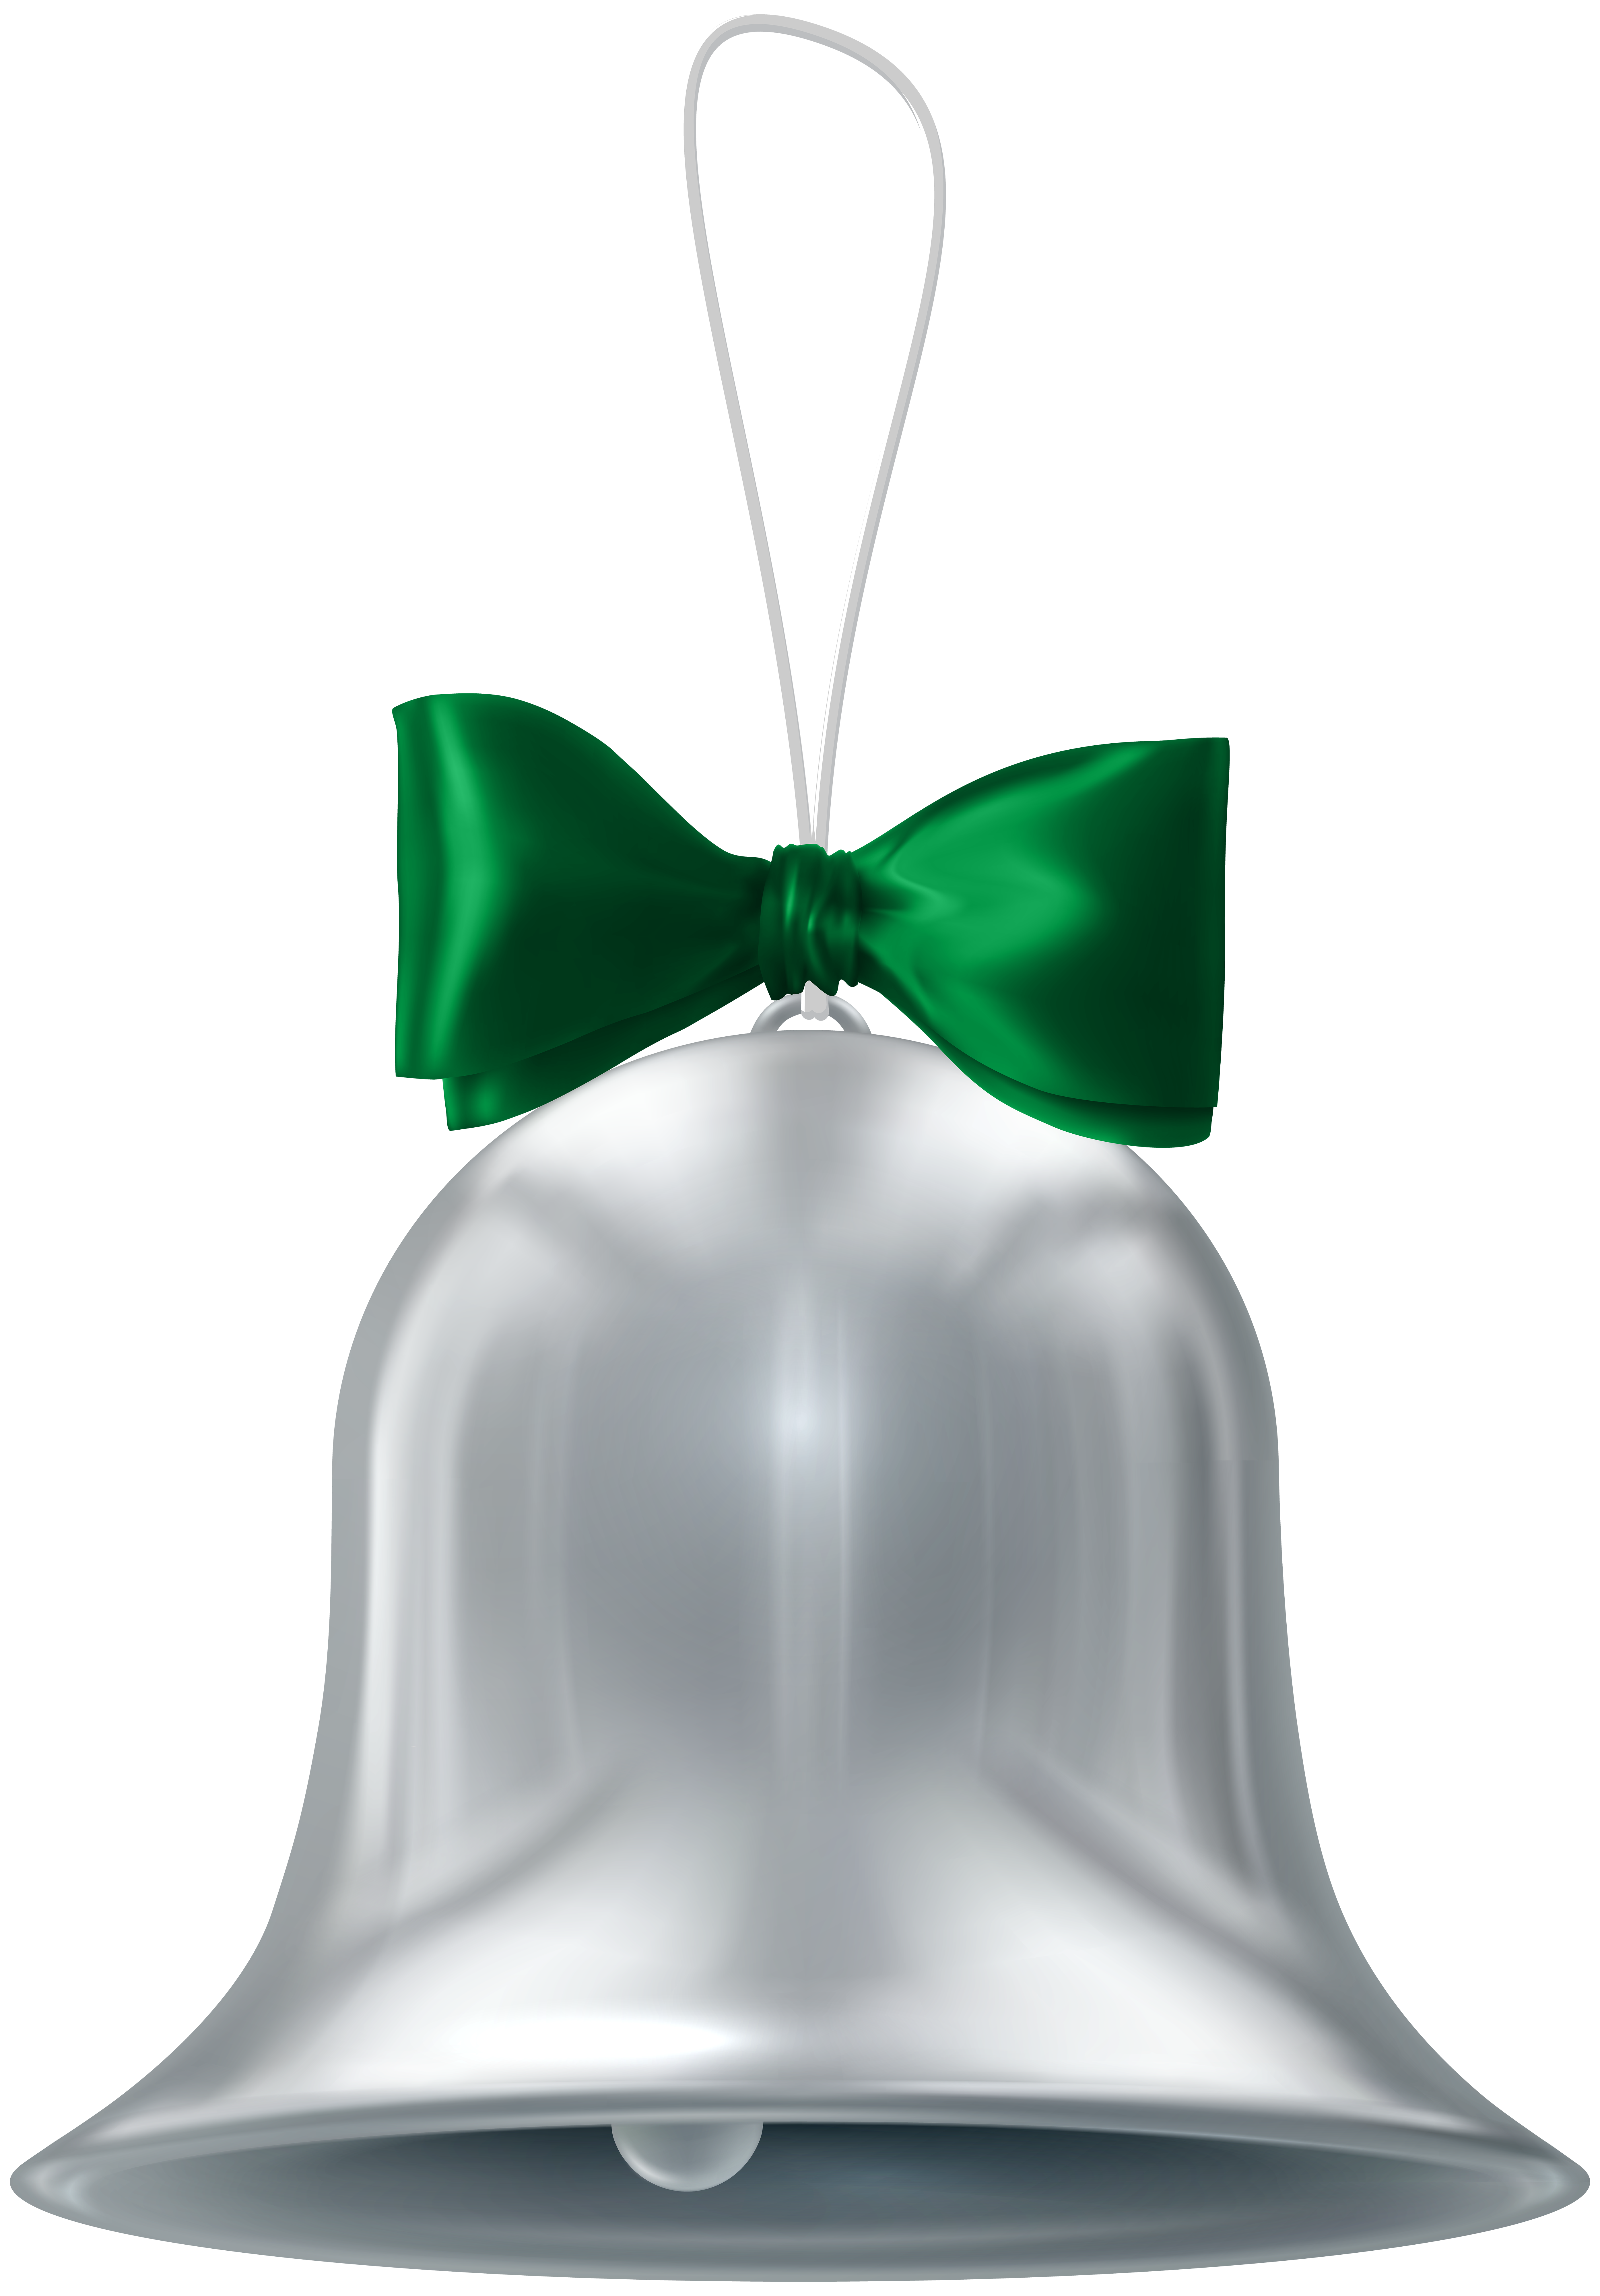 Christmas Silver Bell Transparent PNG Clip Art.